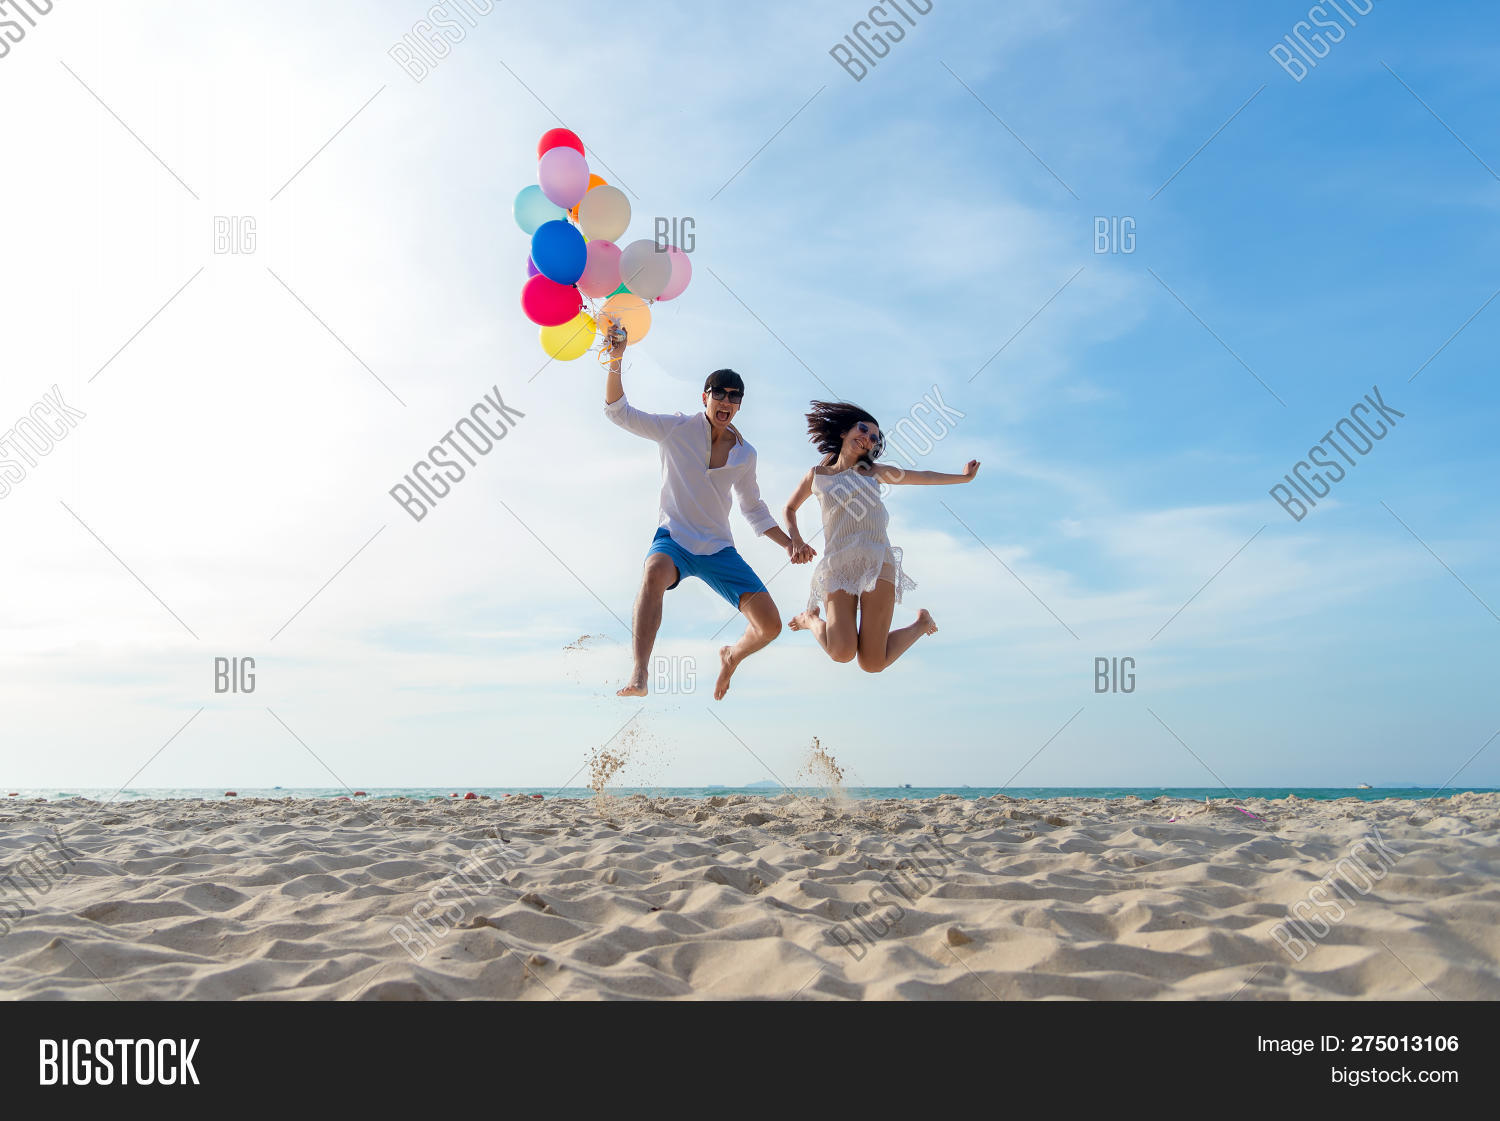 affection,amusing,asian,balloons,beach,beautiful,blue,boyfriend,caucasian,cheerful,coastline,congratulation,couple,day,female,freedom,fun,girlfriend,graduation,happiness,happy,having,holidays,jump,lifestyle,love,lover,male,man,new,ocean,outdoors,relationship,relax,sand,sea,season,sky,smiling,summer,summertime,sunny,together,travel,vacation,valentine,water,woman,year,young